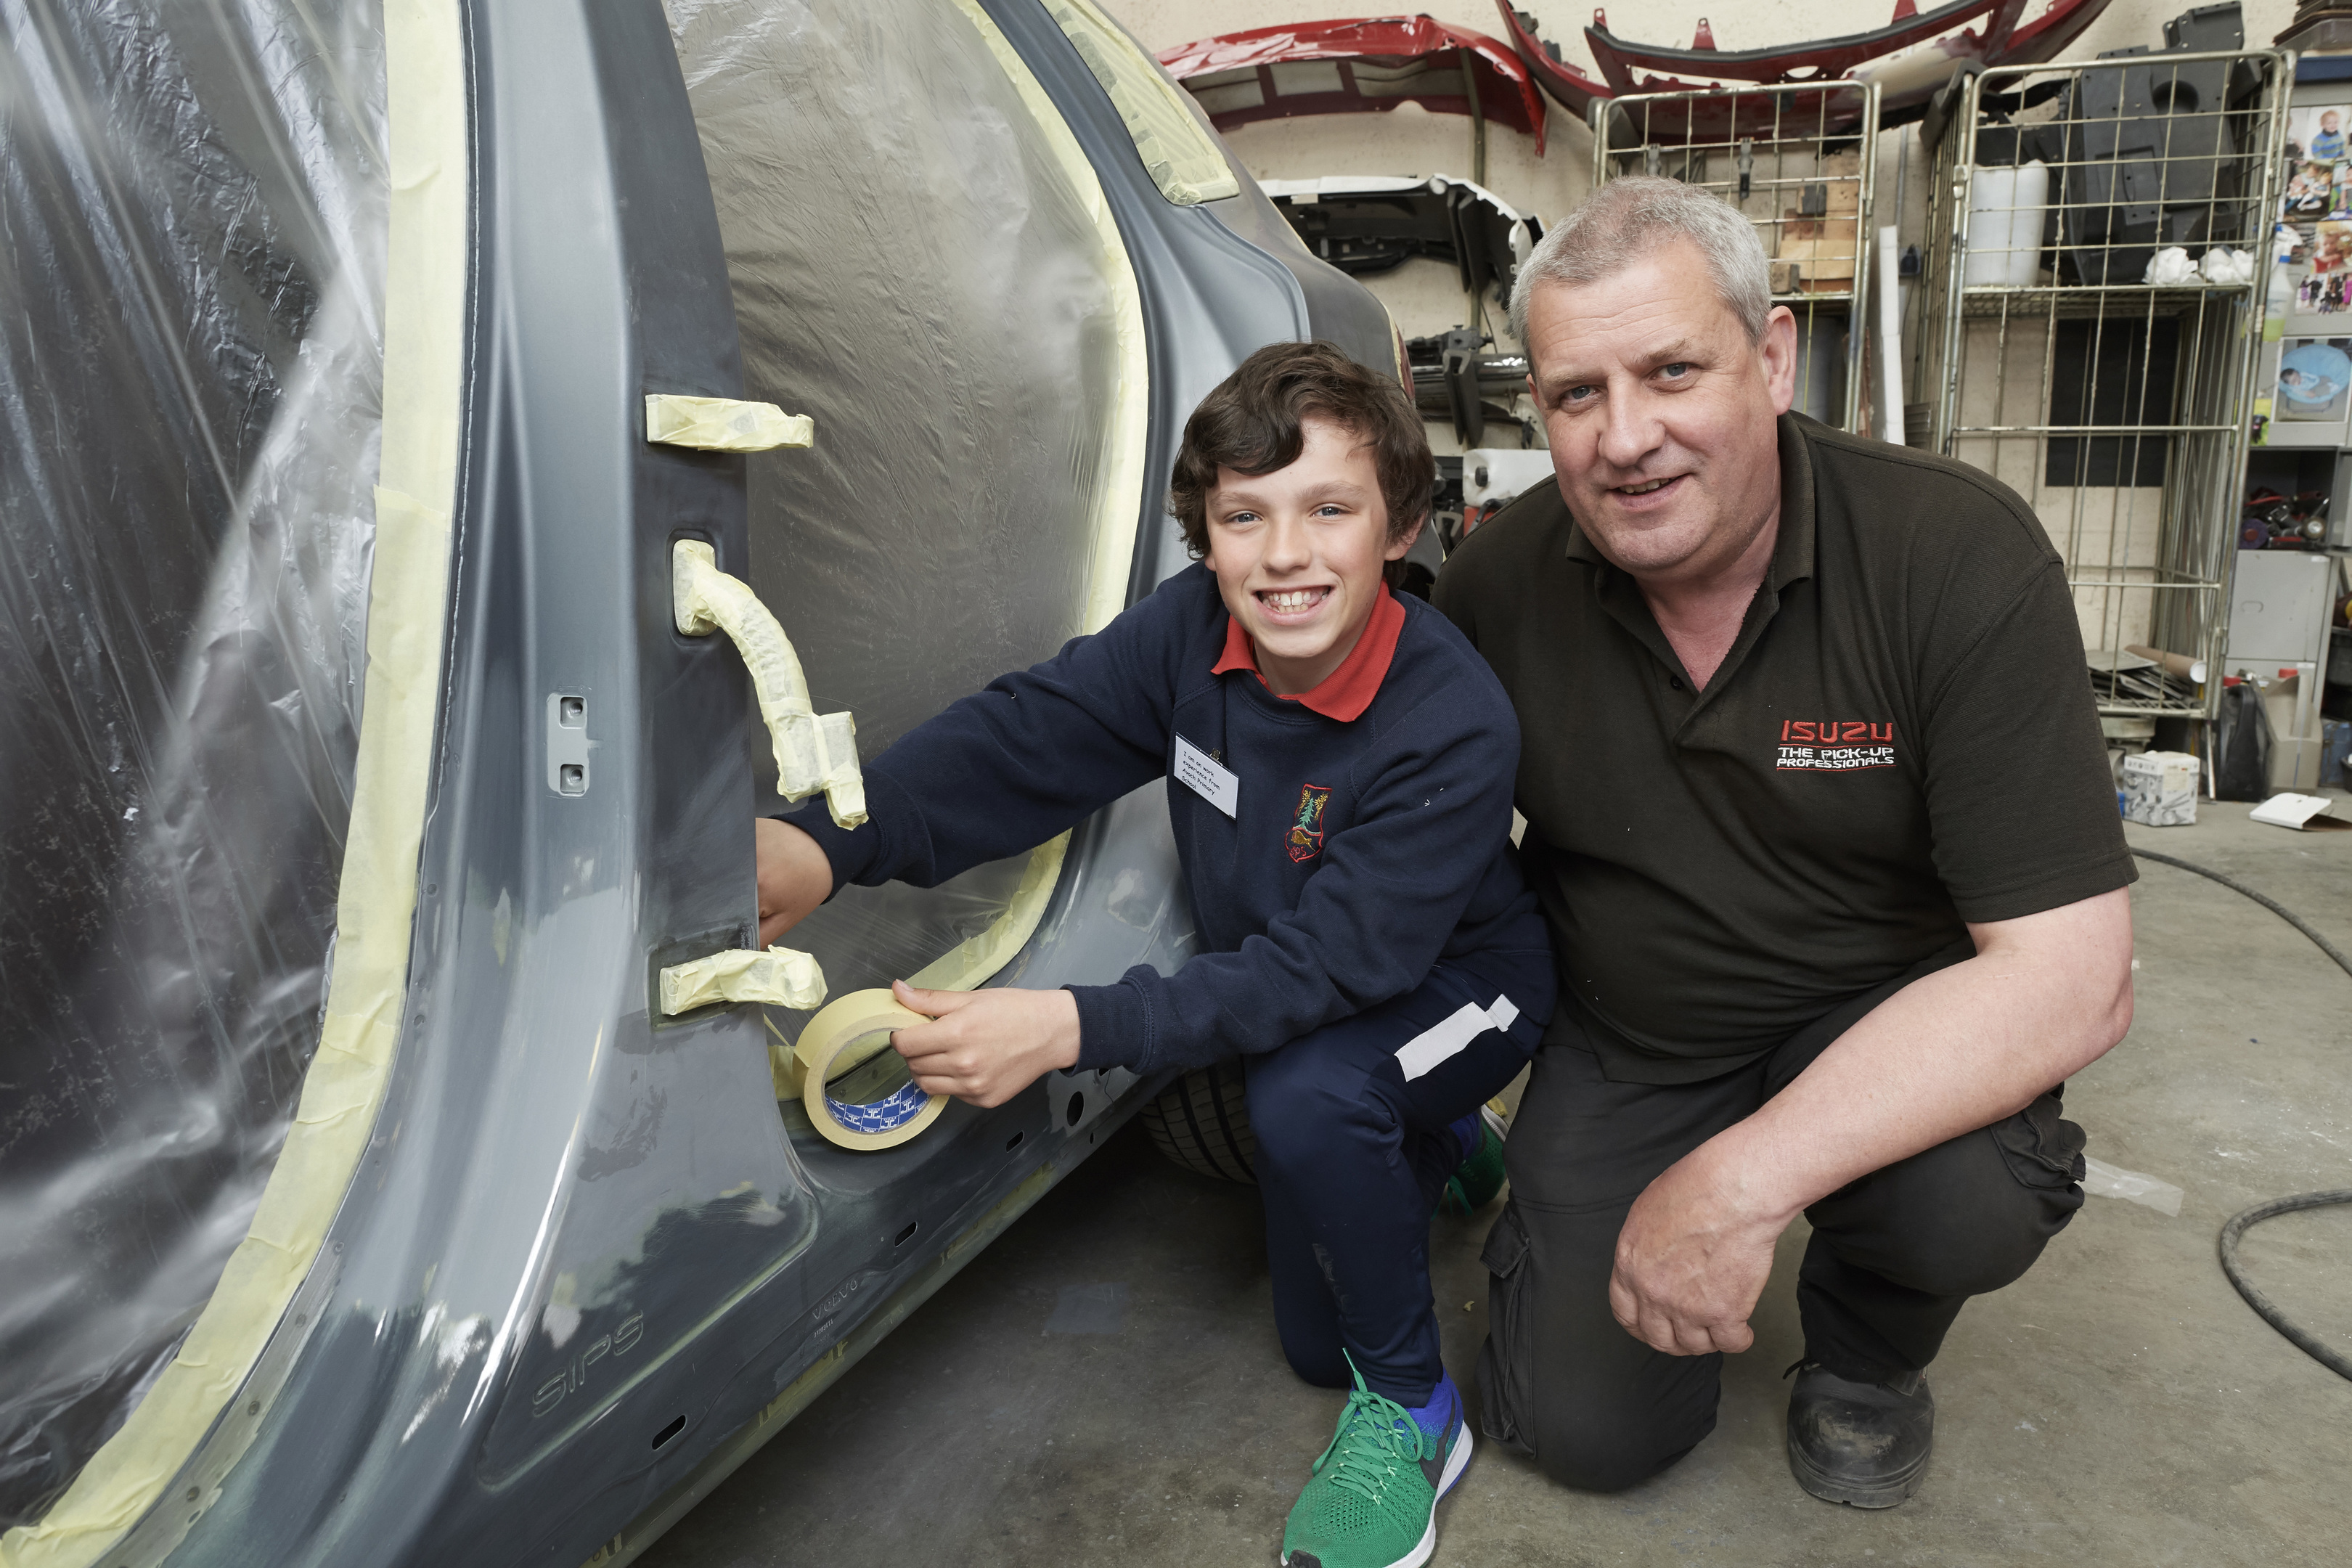 Rhuairidh MacDonald with his dad Philip MacDonald at the Donald Mackenzie car body shop.